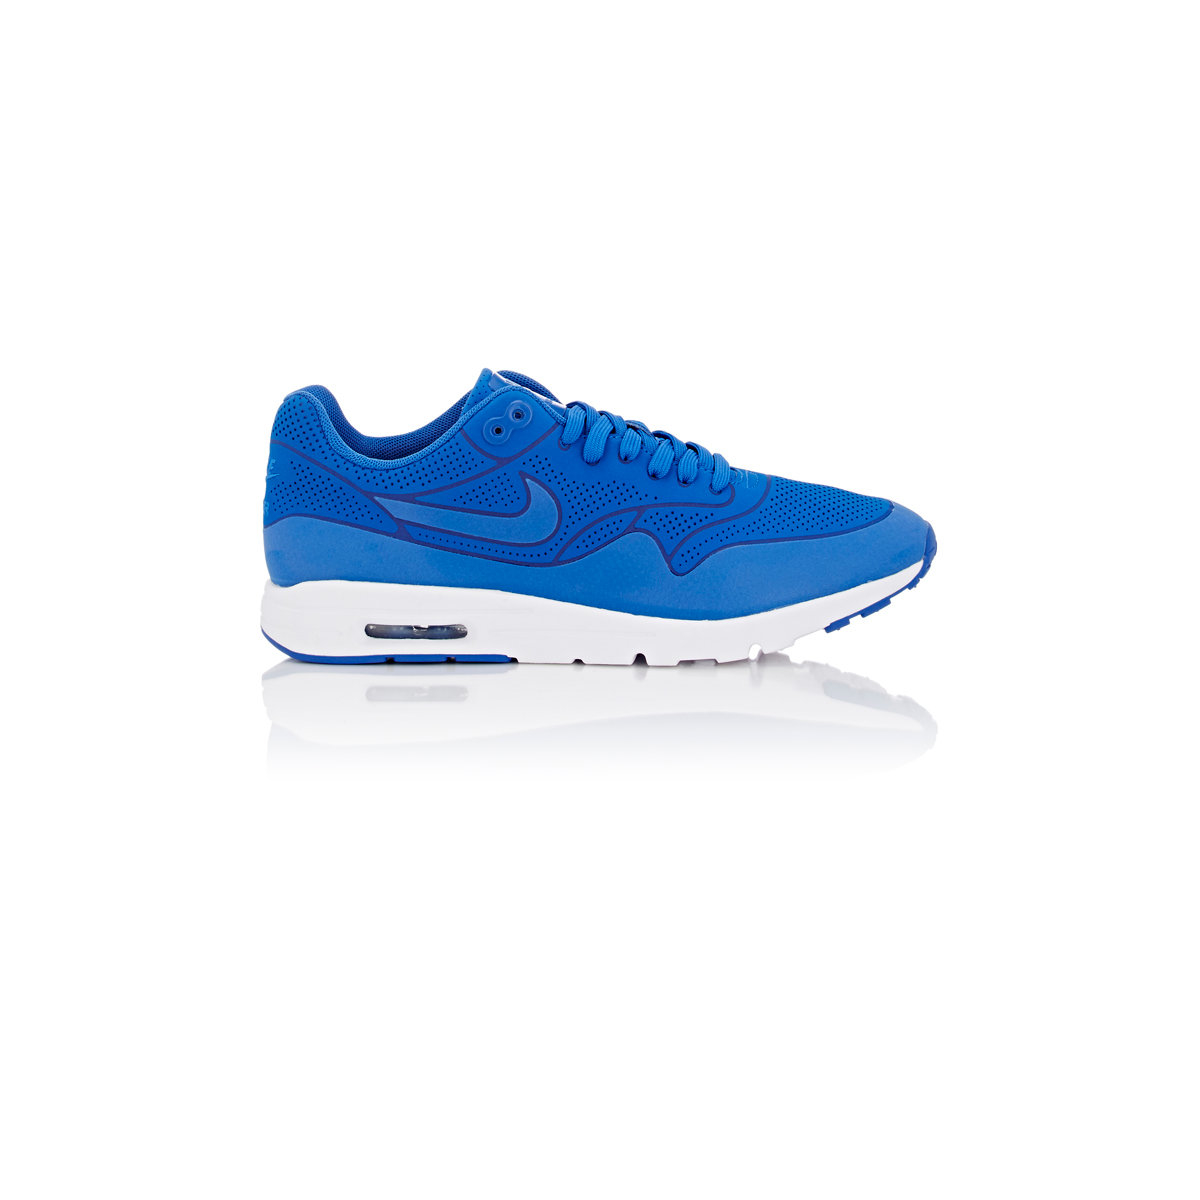 lyst nike women 39 s air max 1 ultra moire sneakers in blue. Black Bedroom Furniture Sets. Home Design Ideas